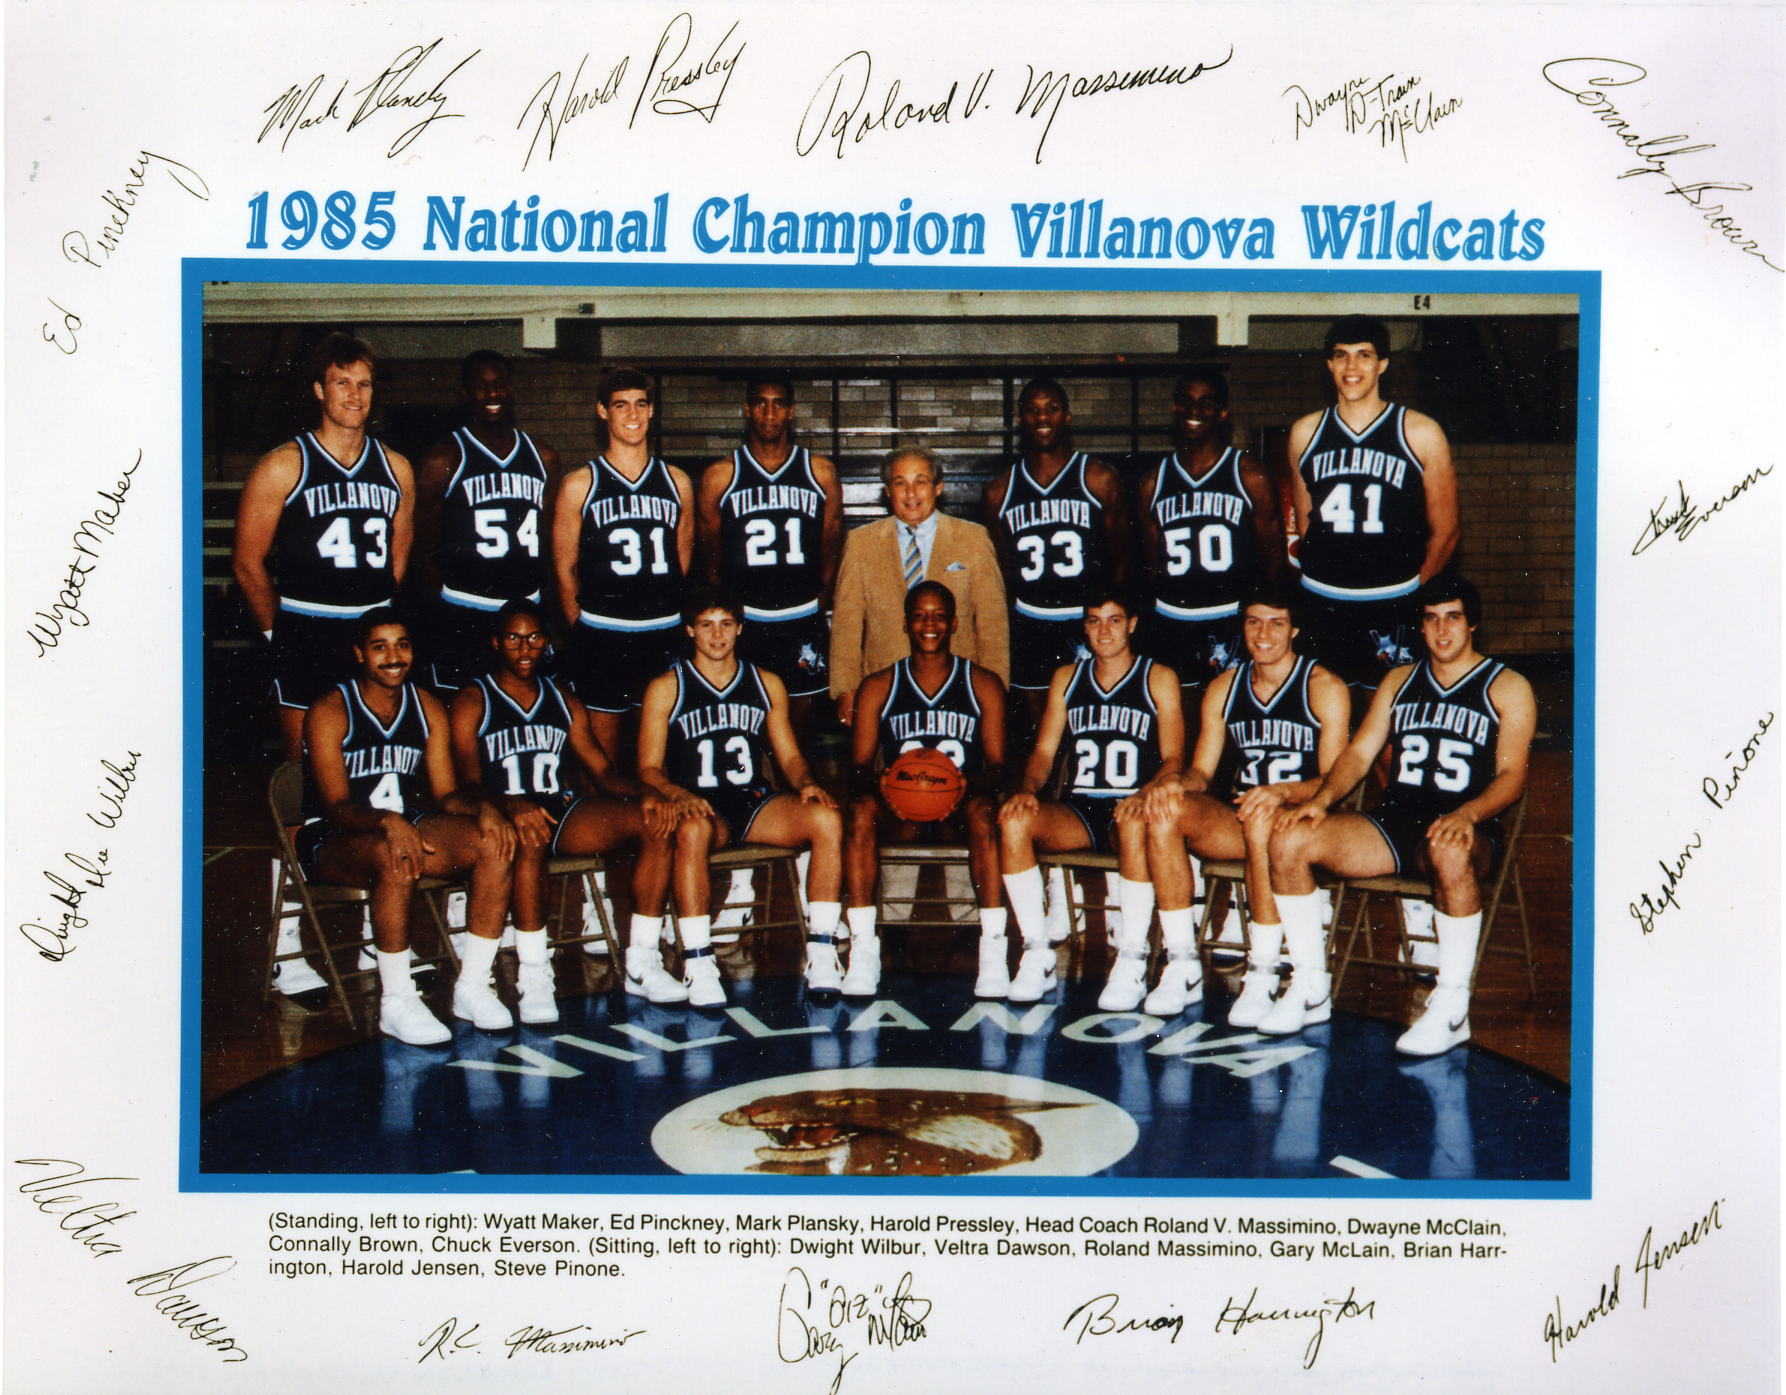 1985 National Champion Villanova Wildcats